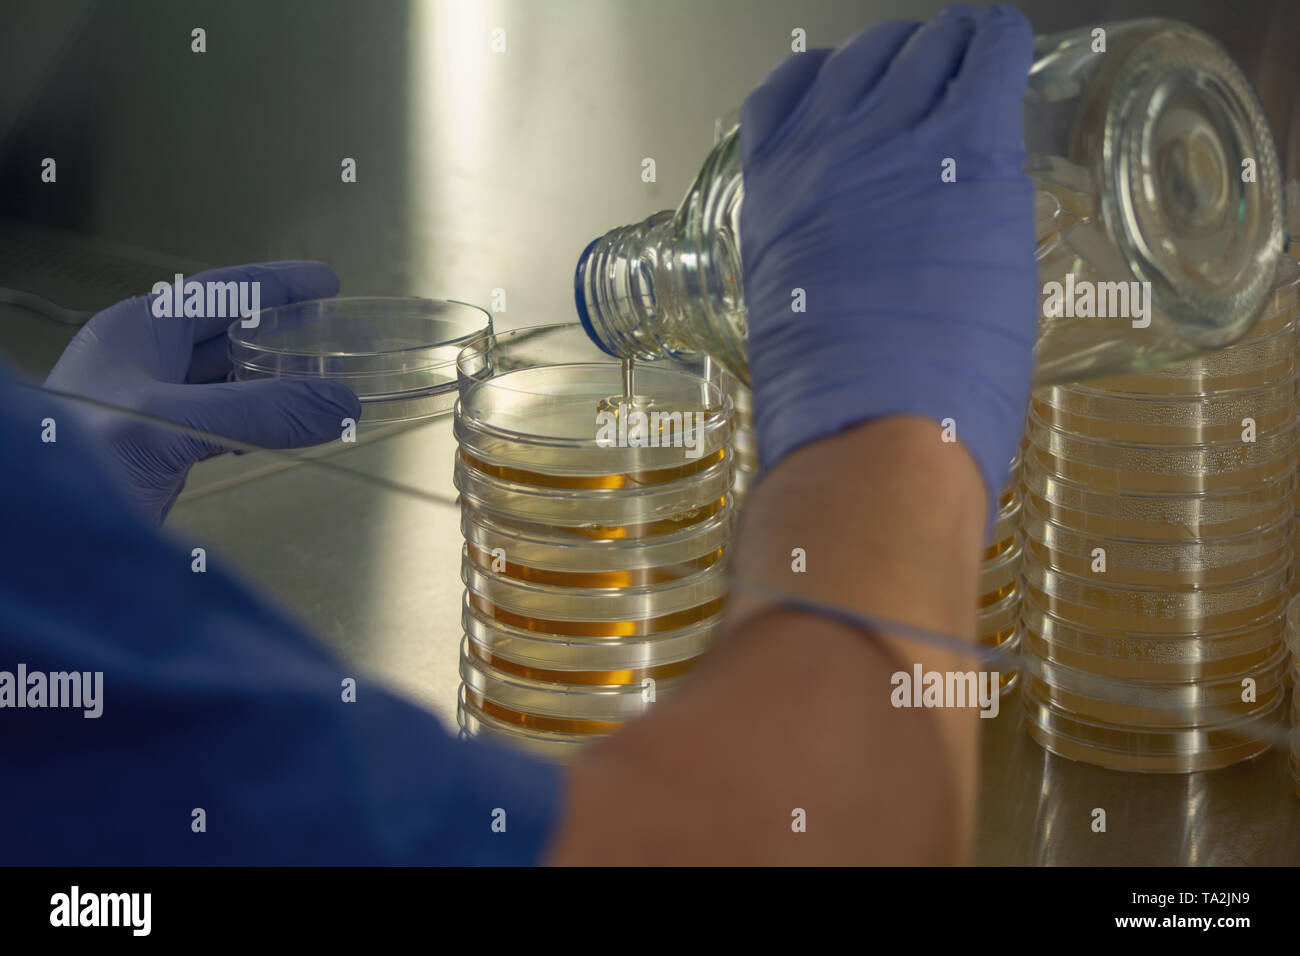 Scientist at work - Stock Image